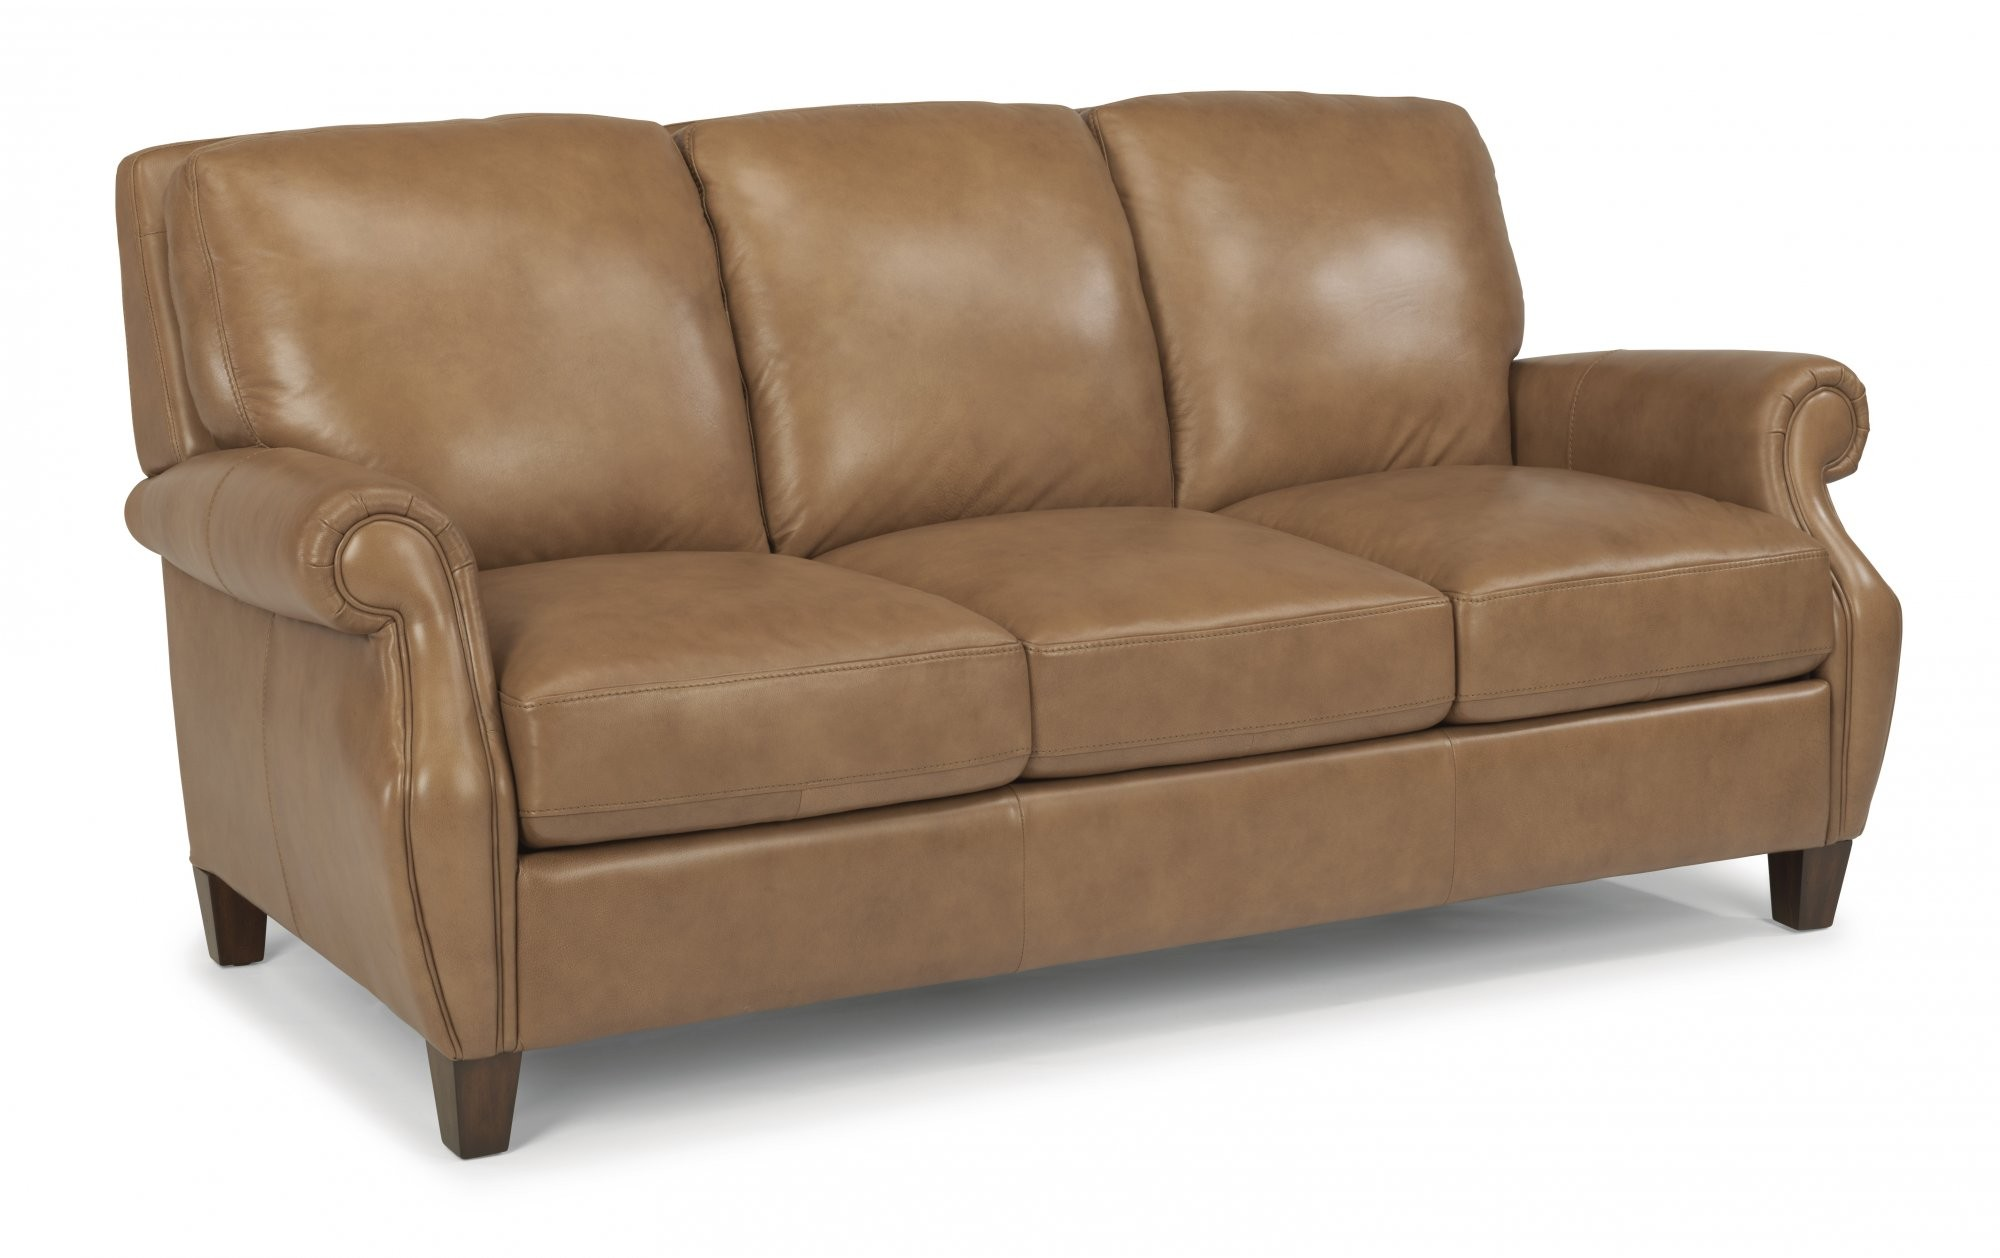 flexsteel sofa prices sofa furniture flexsteel